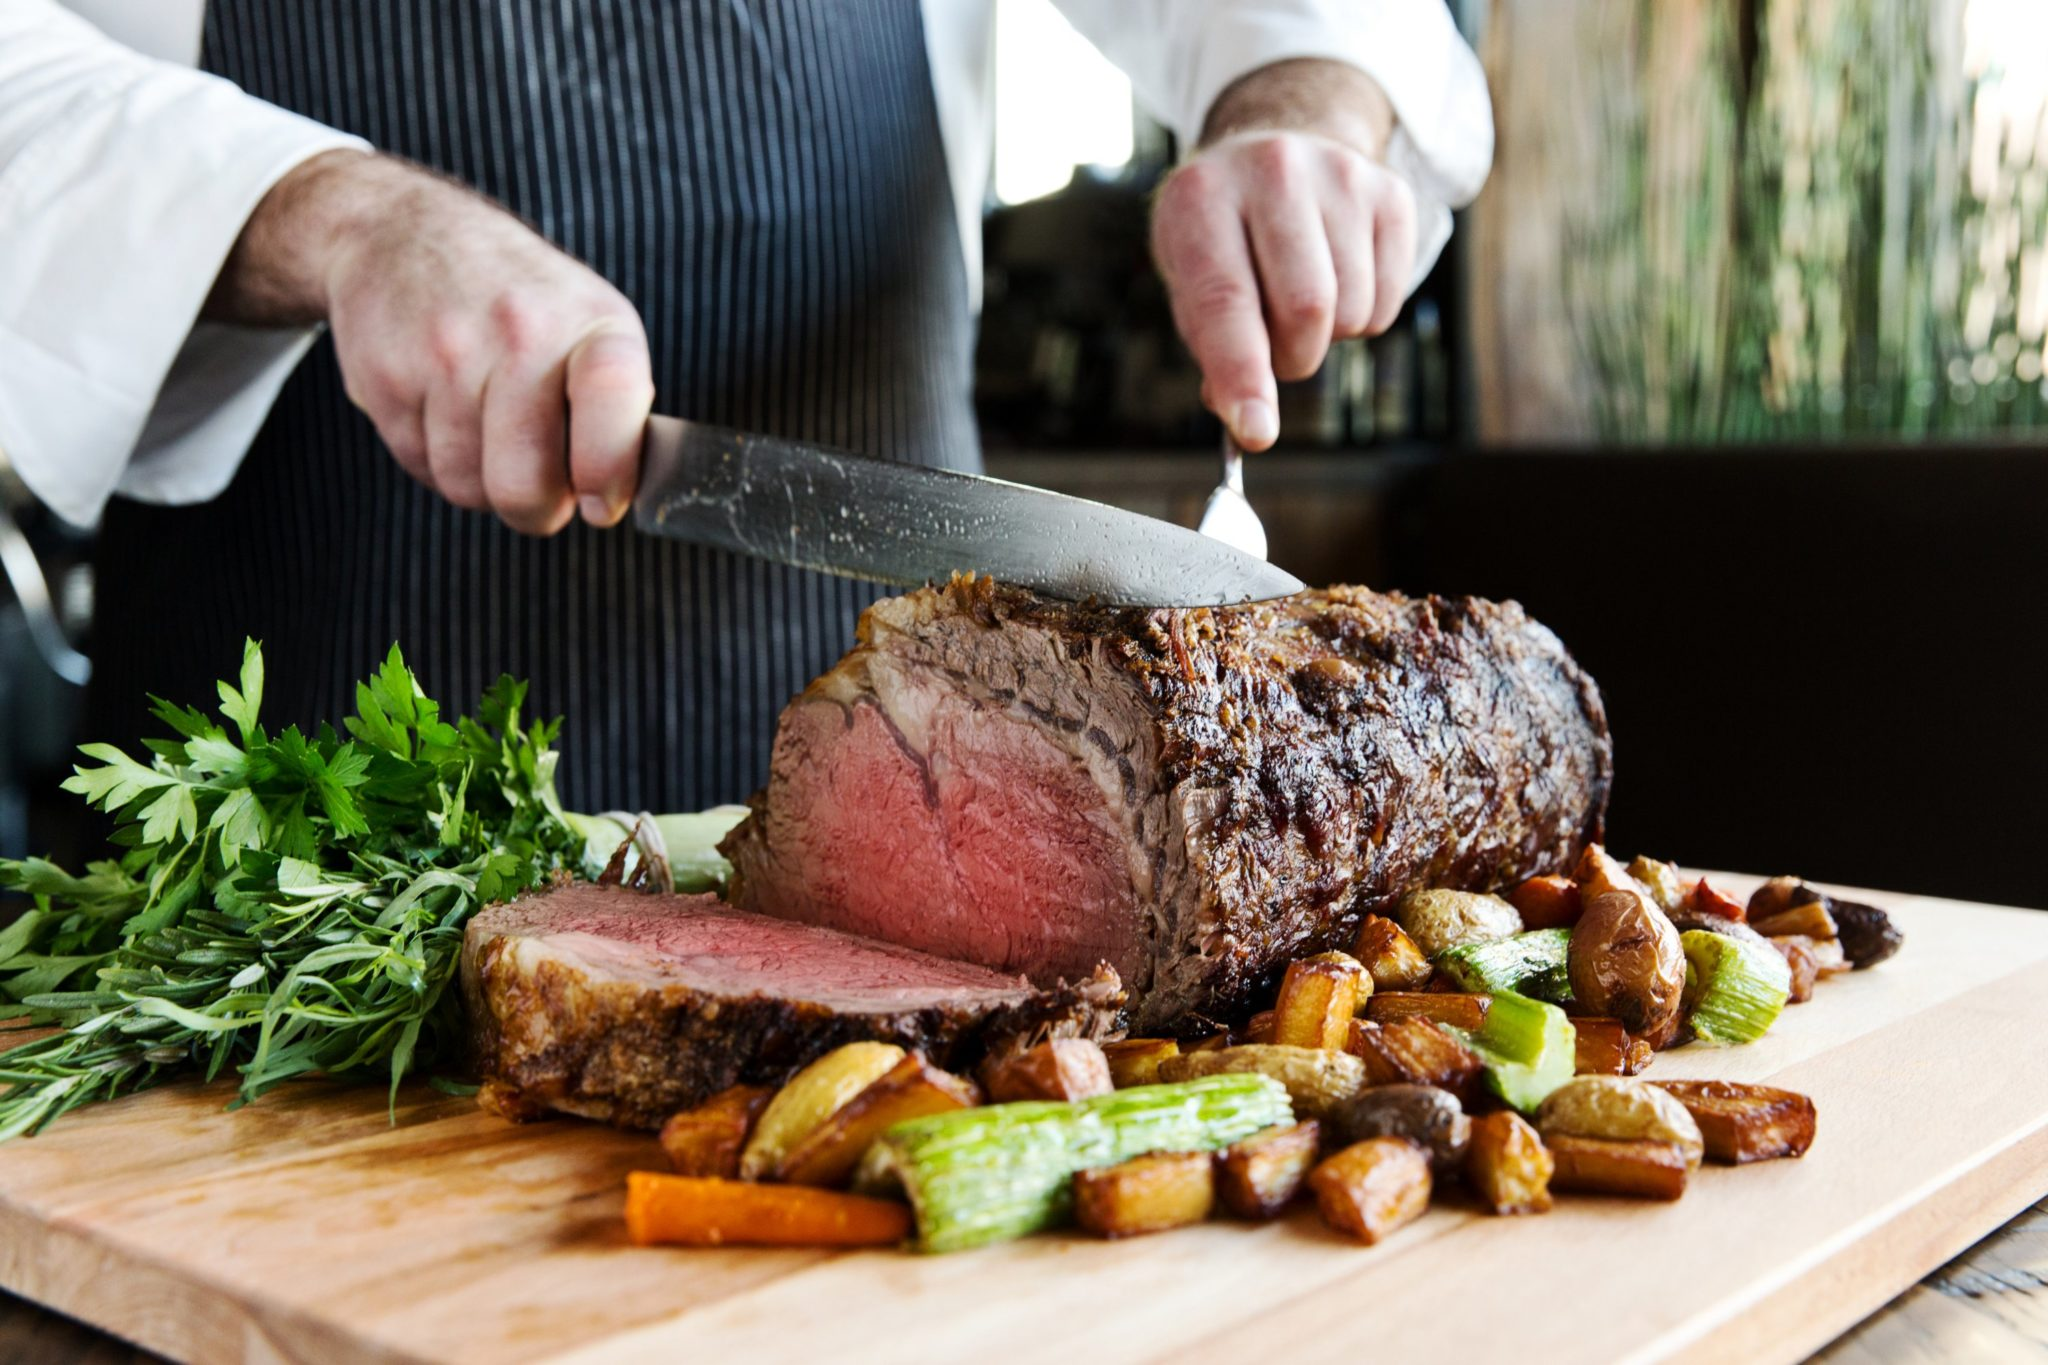 Carving prime rib at City Perch. Photograph courtesy of City Perch.